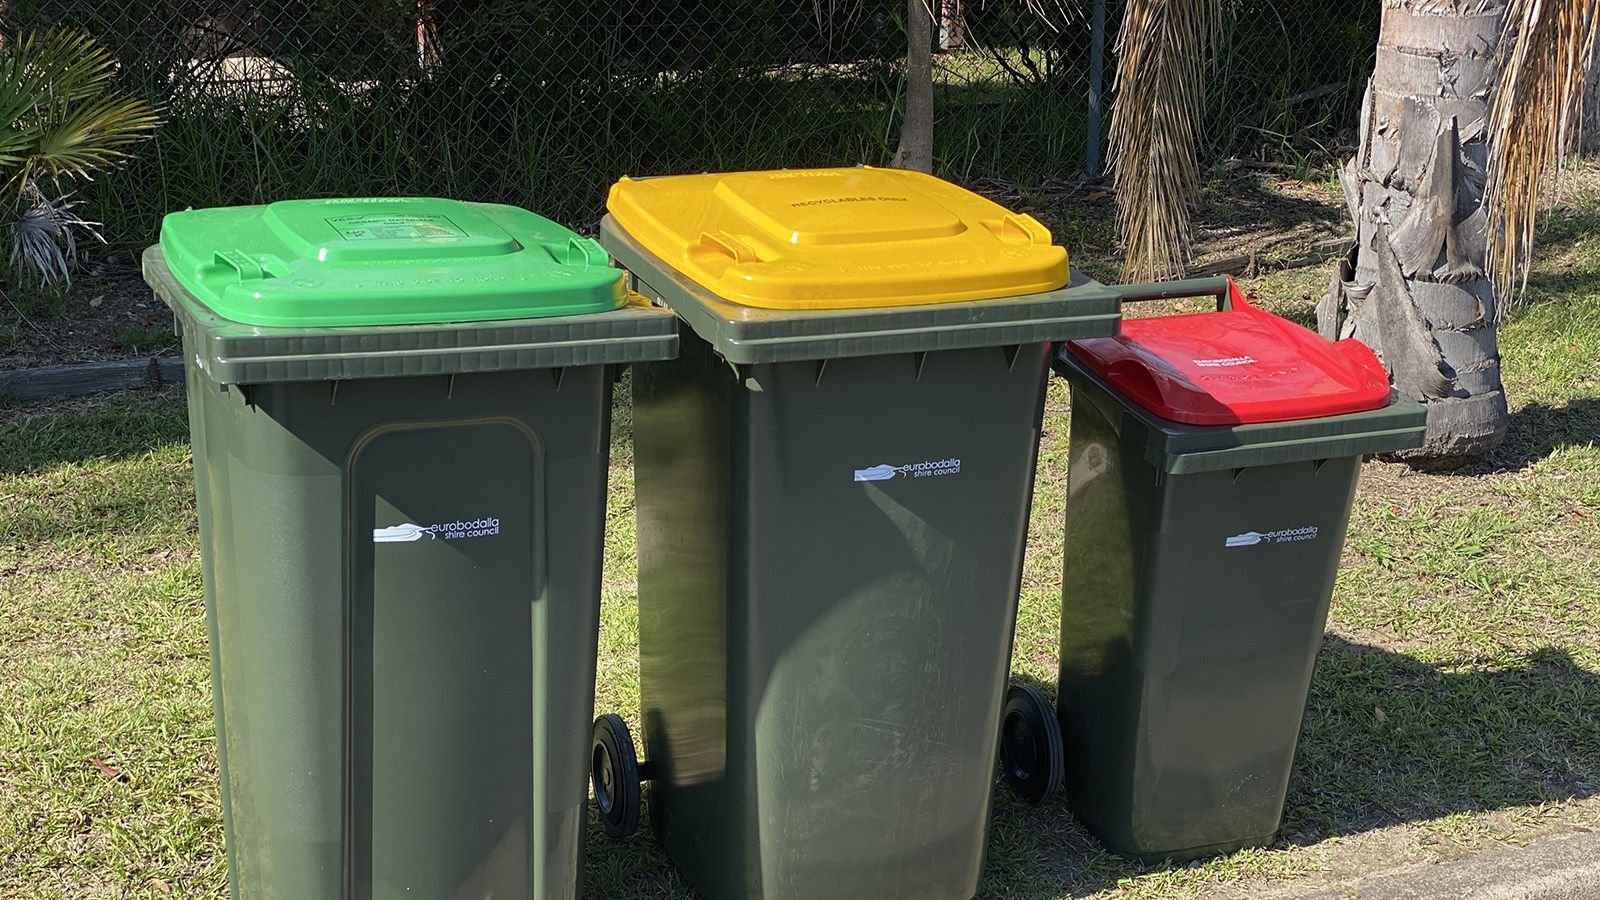 Three household bins, with a gree, yellow, and red lid. banner image